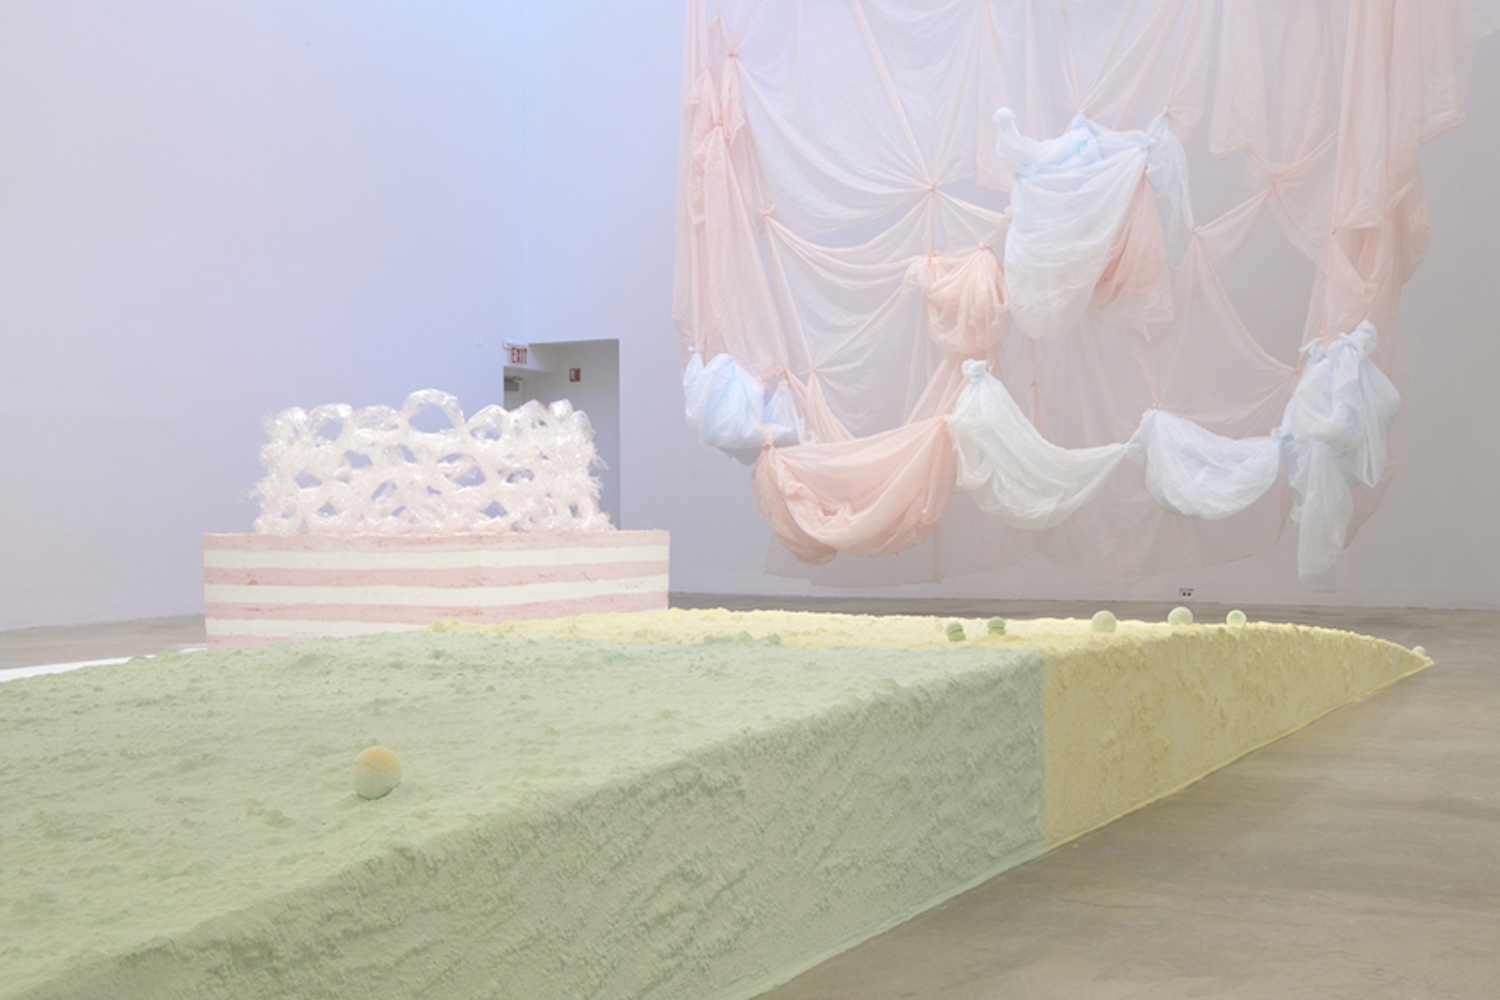 Karla Black, Practically In Shadow, 2013, installation view, Institute of Contemporary Art, University of Pennsylvania. Photo- Aaron Igler:Greenhouse Media.